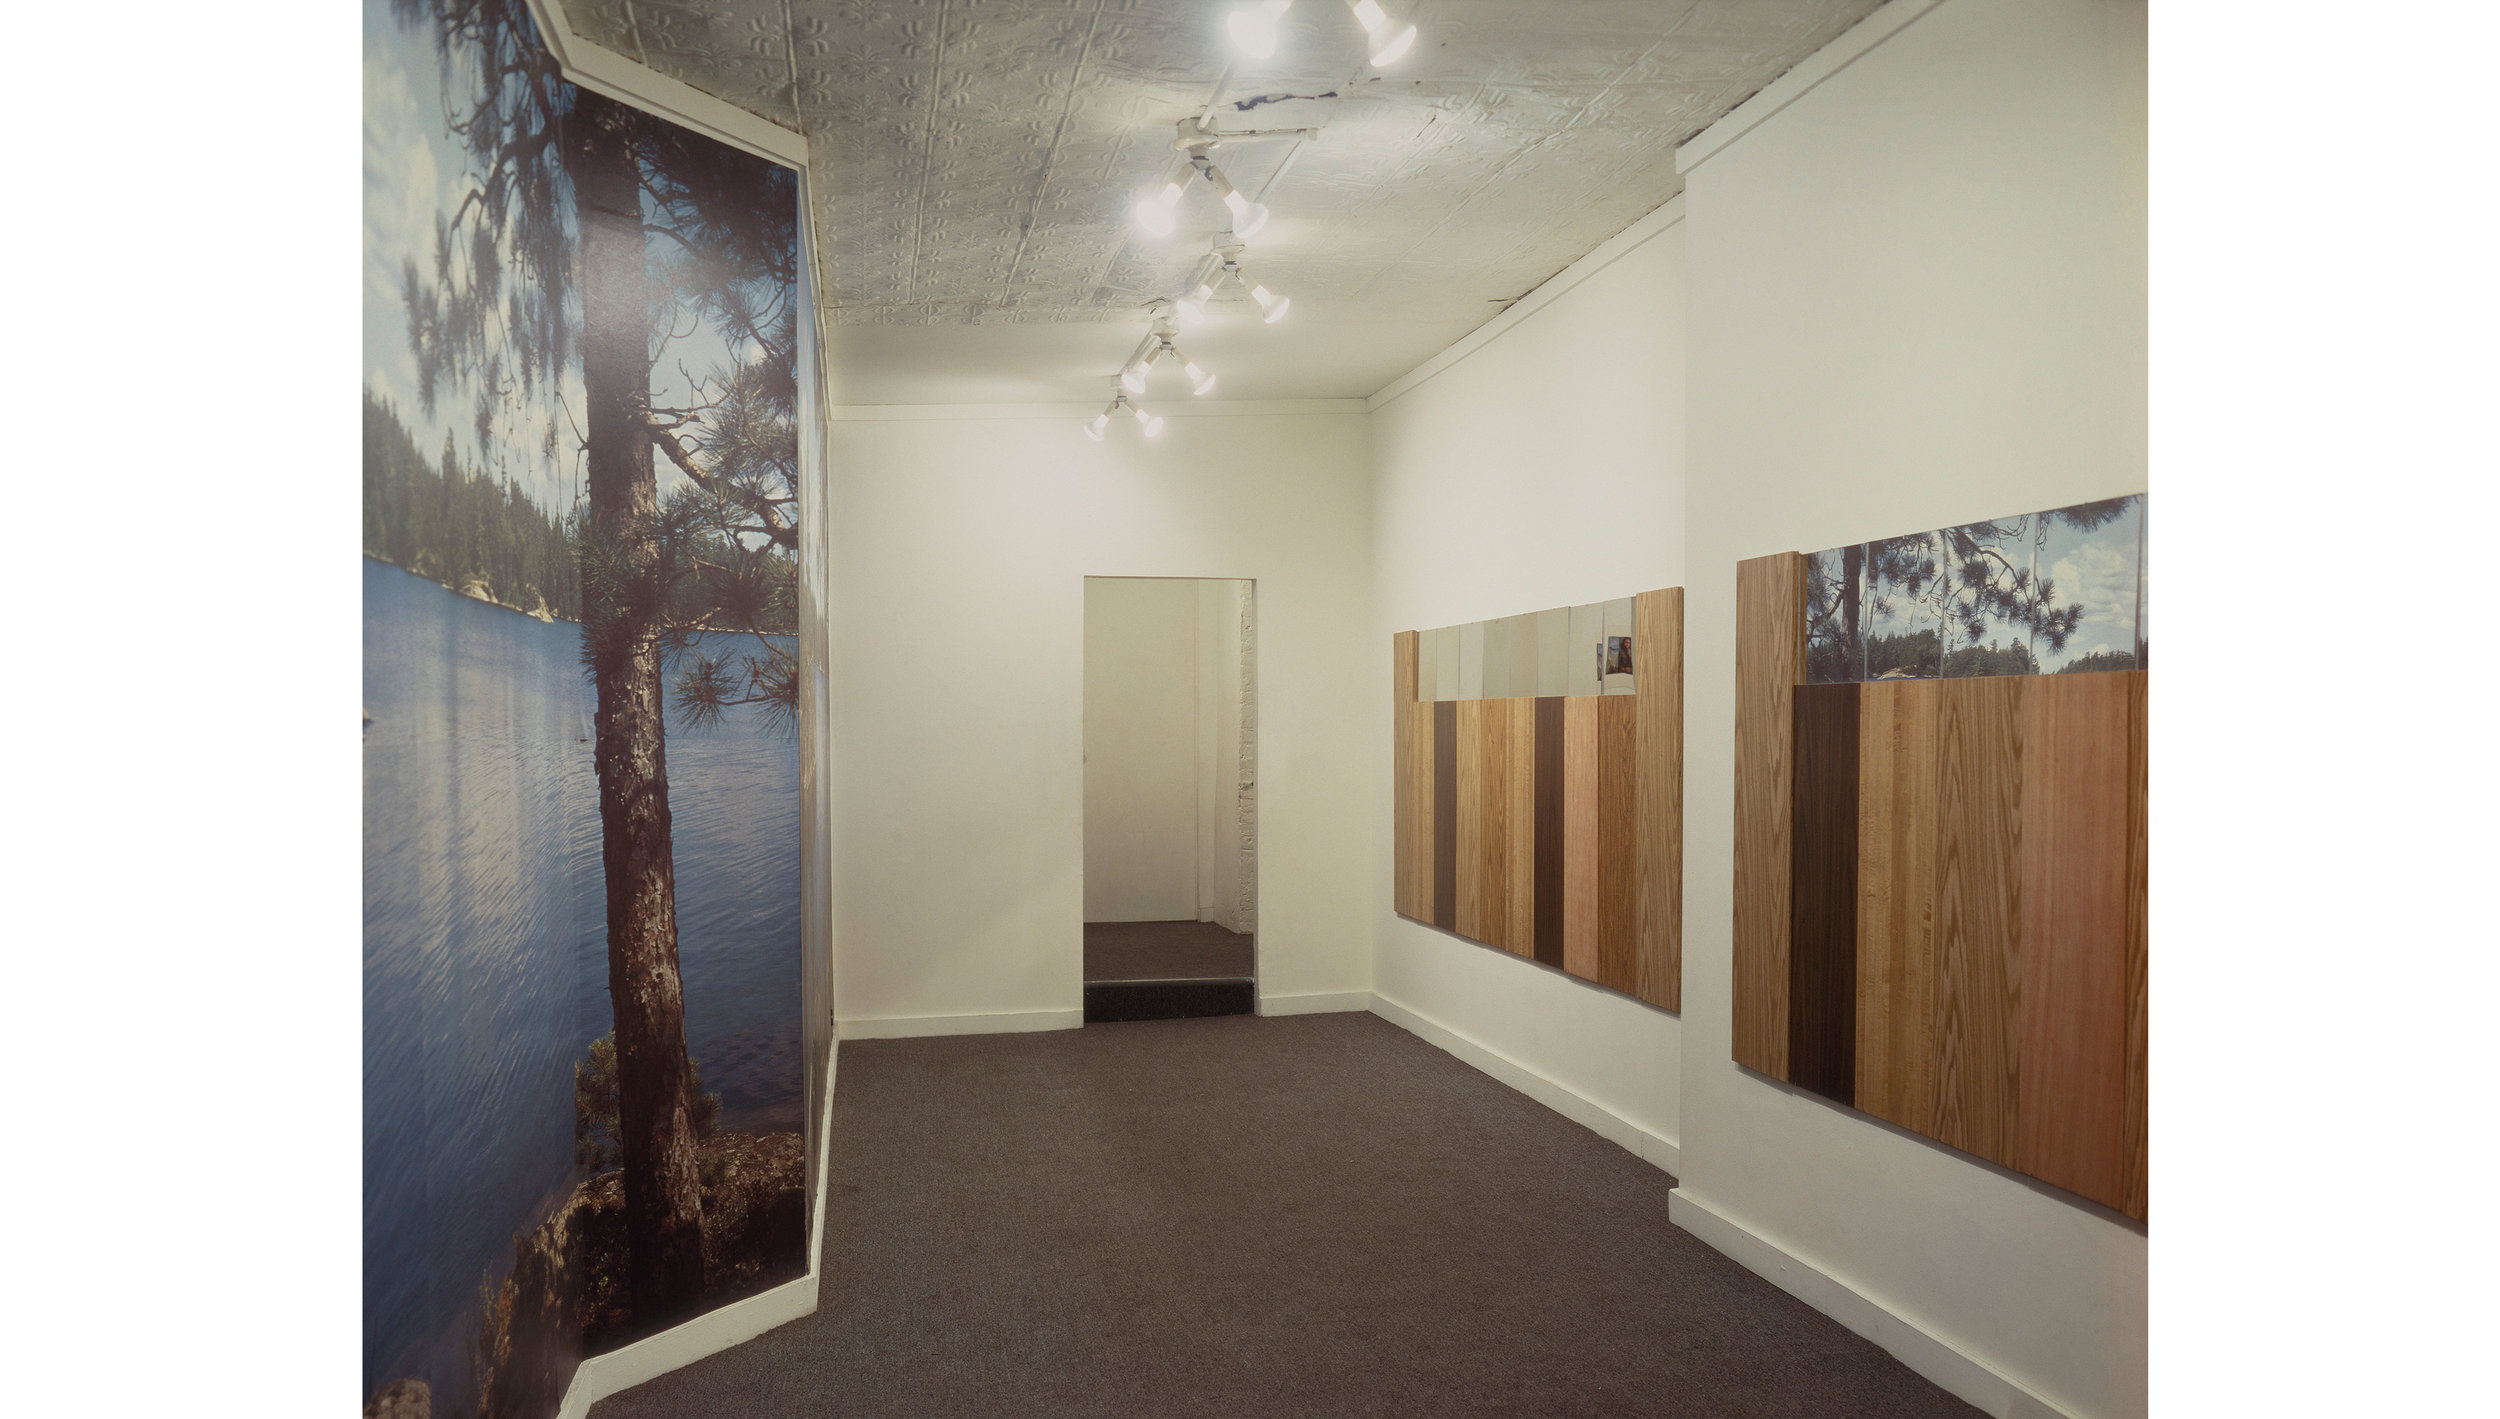 Vikky Alexander, Lake in the Woods, 1986. Installation view, Cash/Newhouse Gallery, New York.